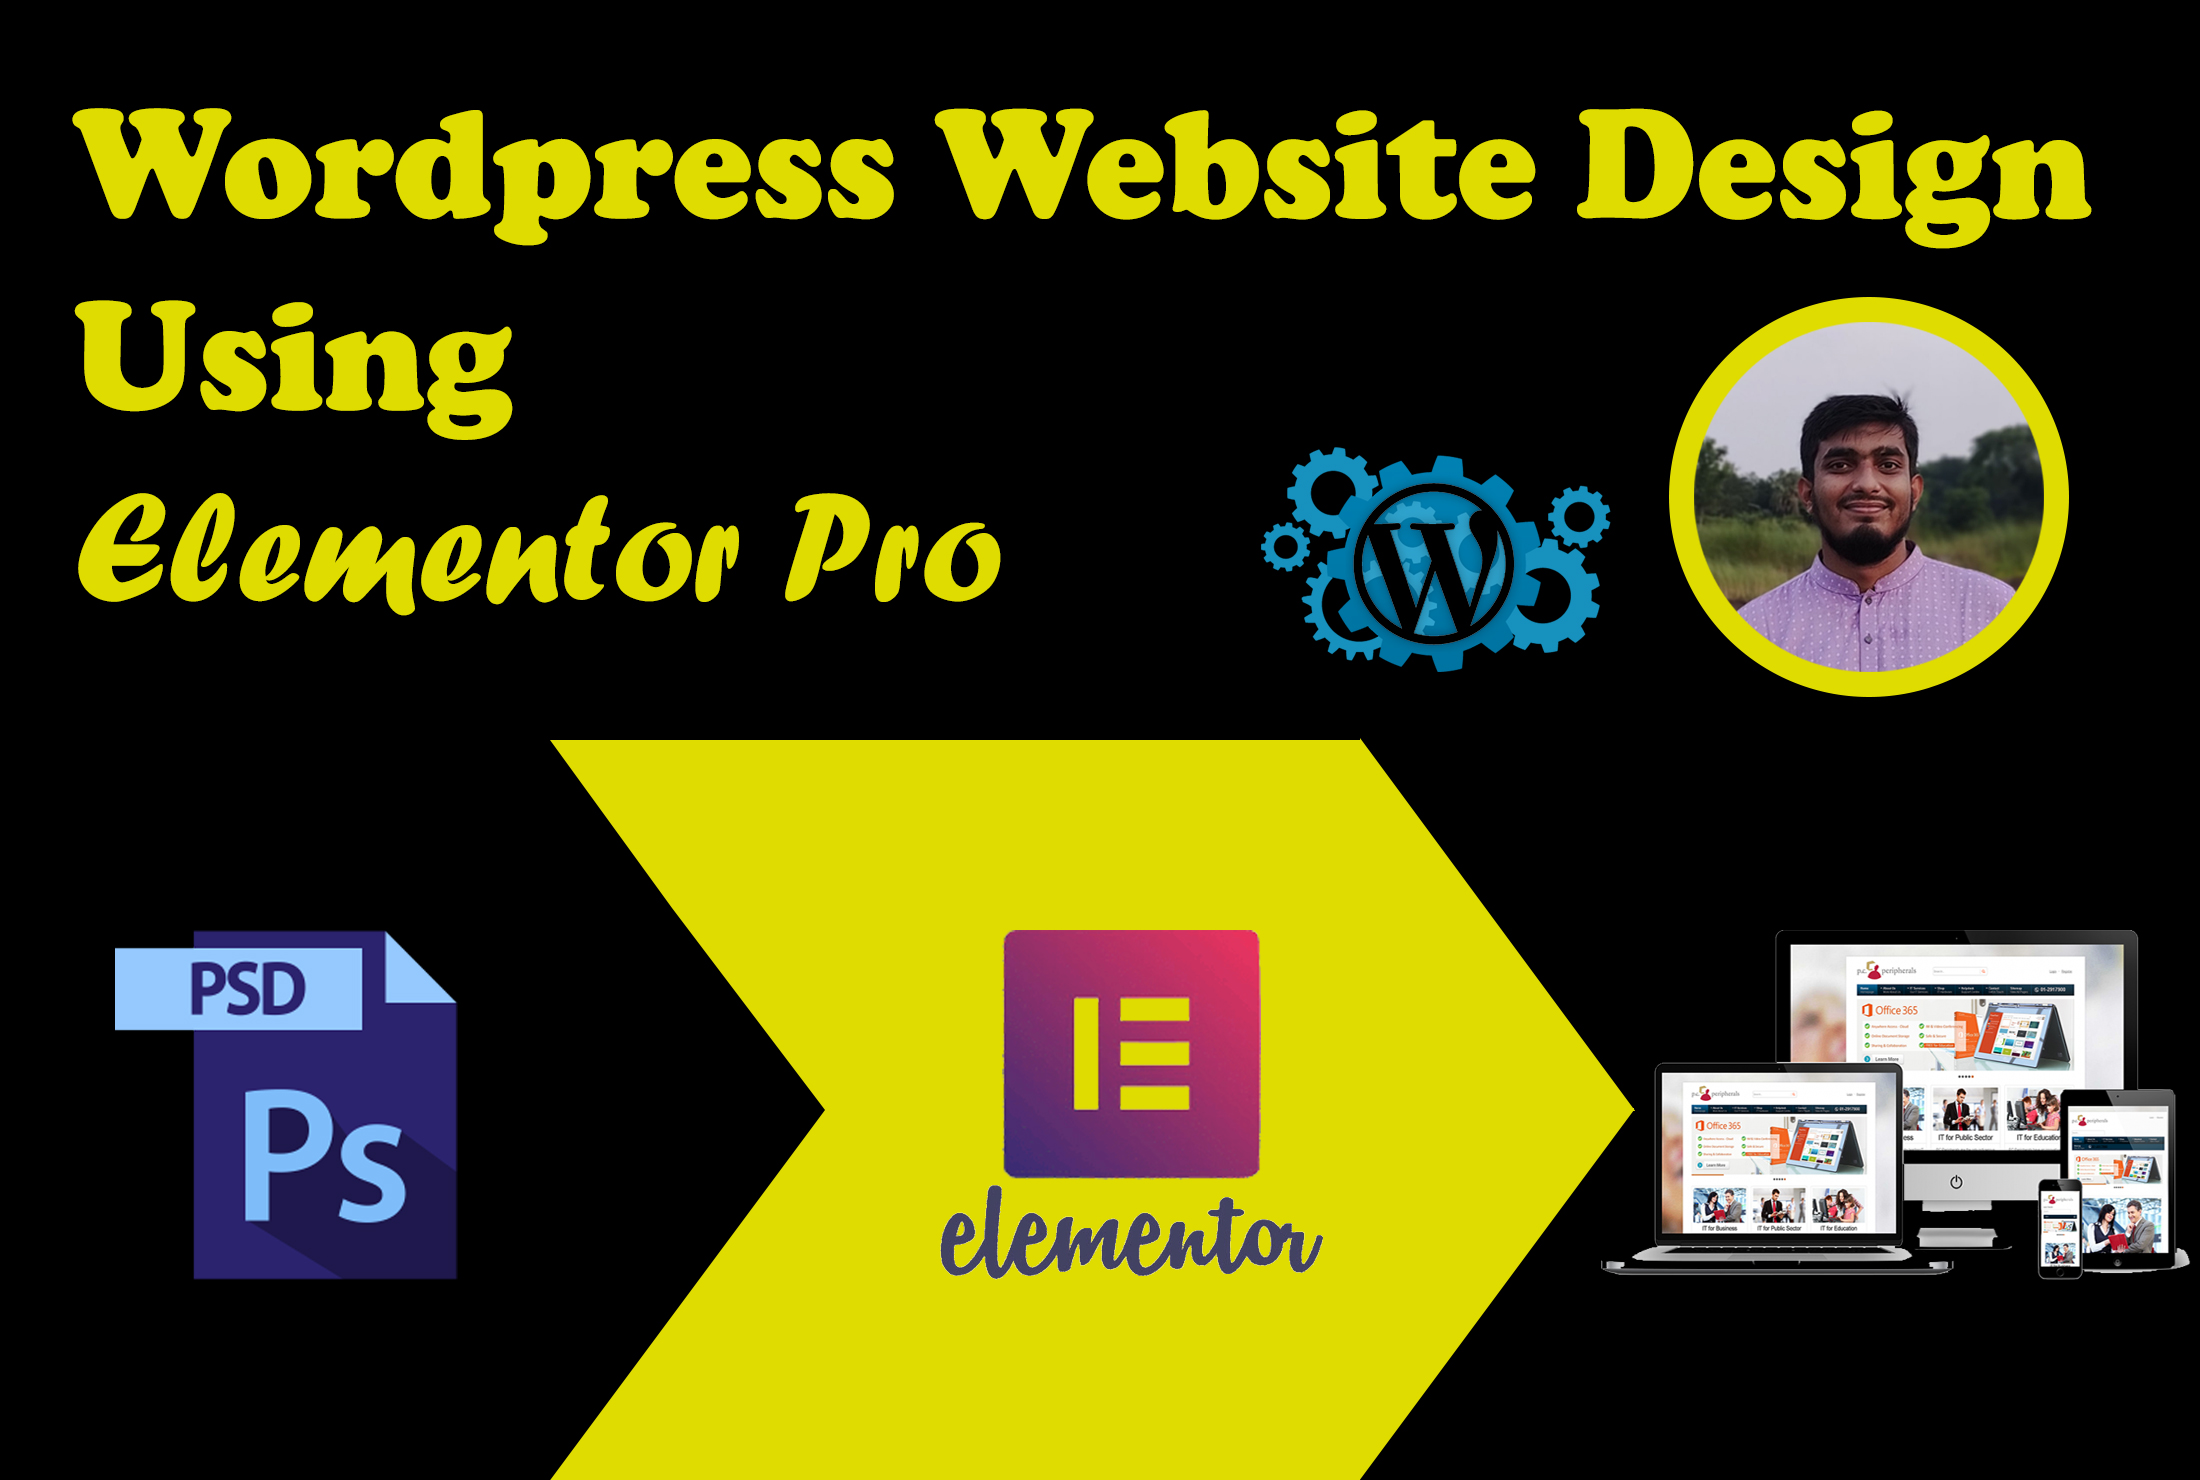 I will create or redesign wordpress website or landing page using elementor